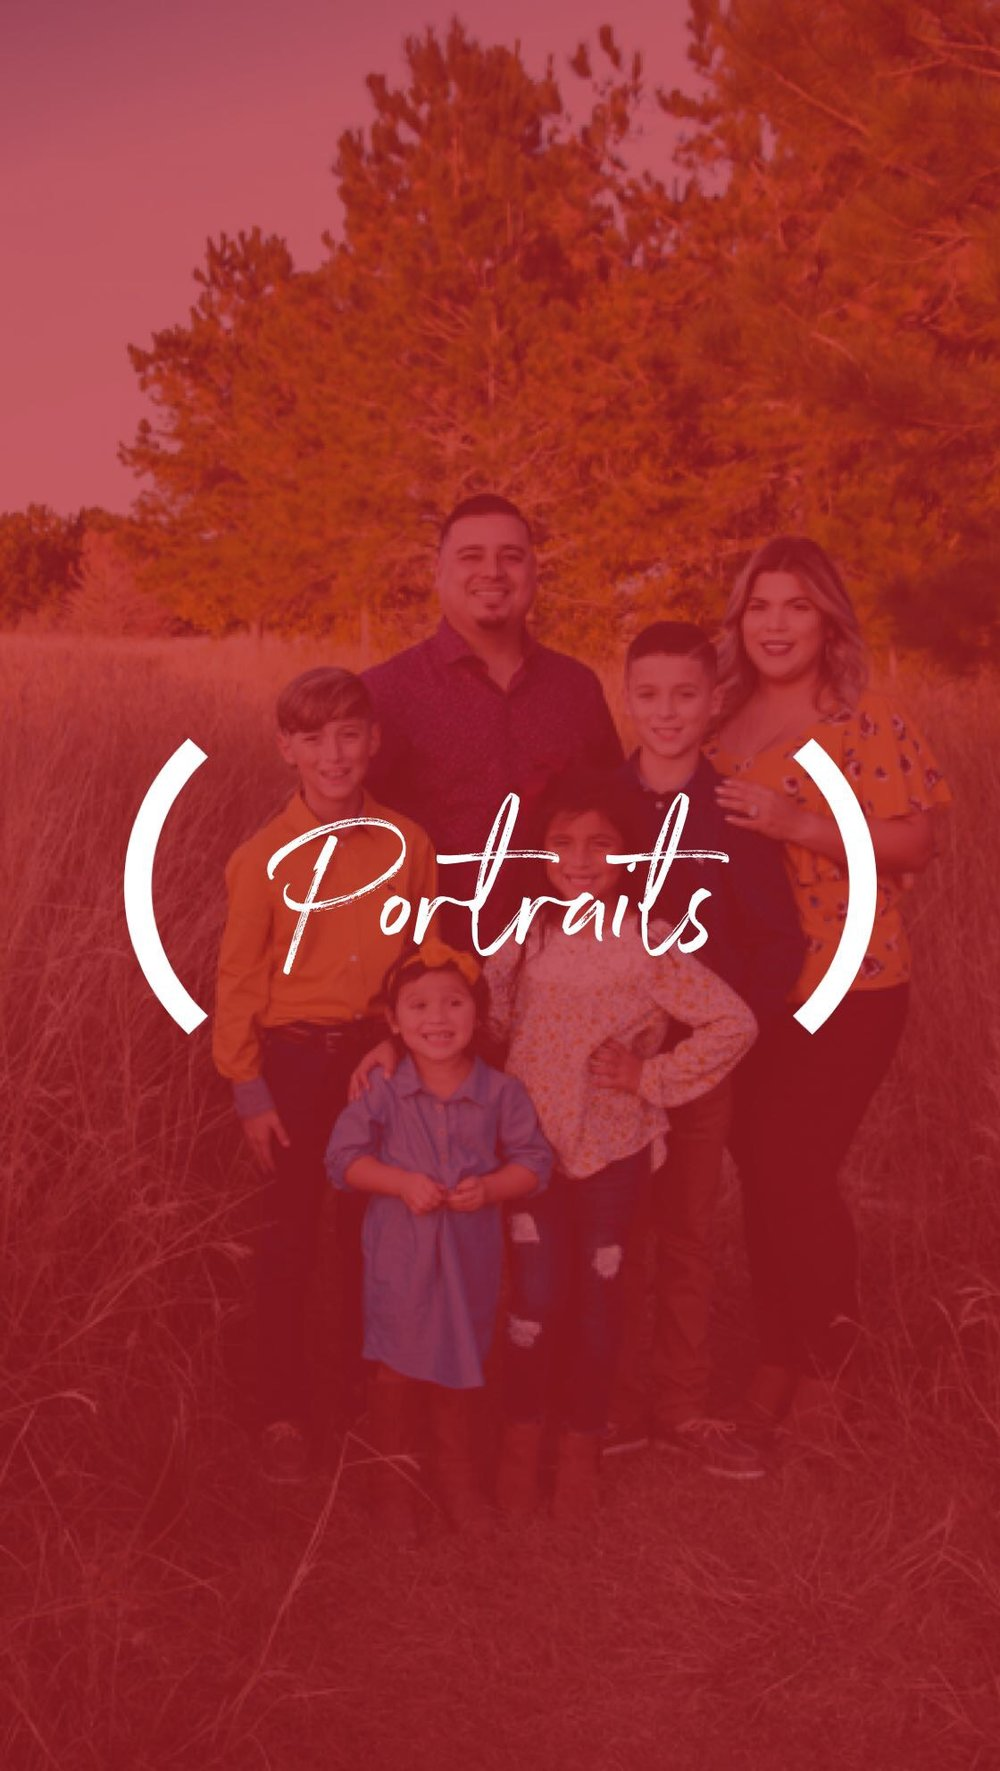 MINIMUM DONATION $50 - Portrait sessions are perfect for Seniors, Families, or Couples.Make a Donation for the Minimum amount listed (or more), and receive the following :Mini Session 20 minutes | 20 Digital images.Minimum Donation $50Session valid until March 30th 2019